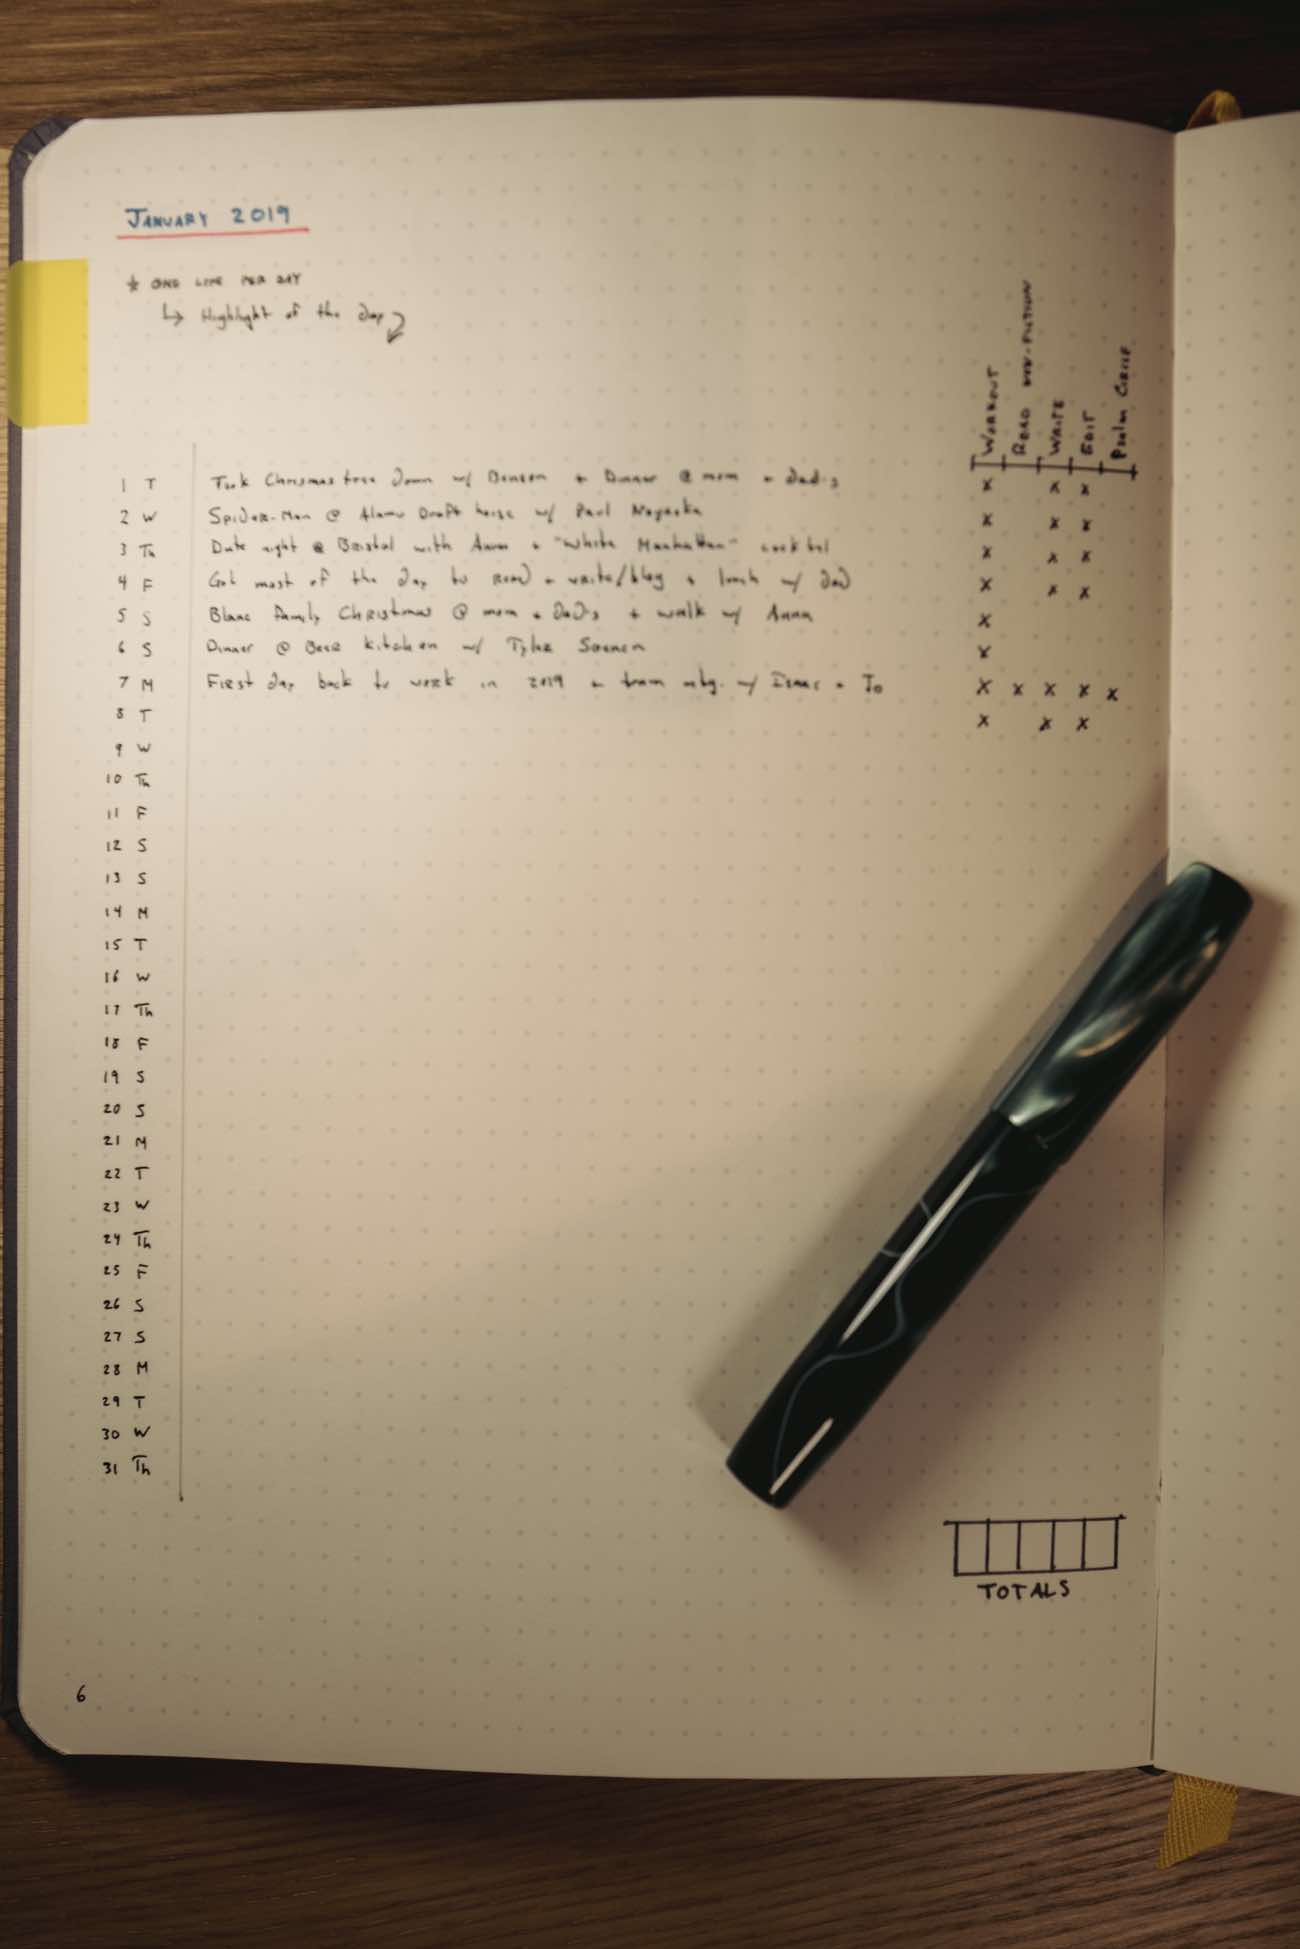 Bullet Journal Daily Habit Tracking